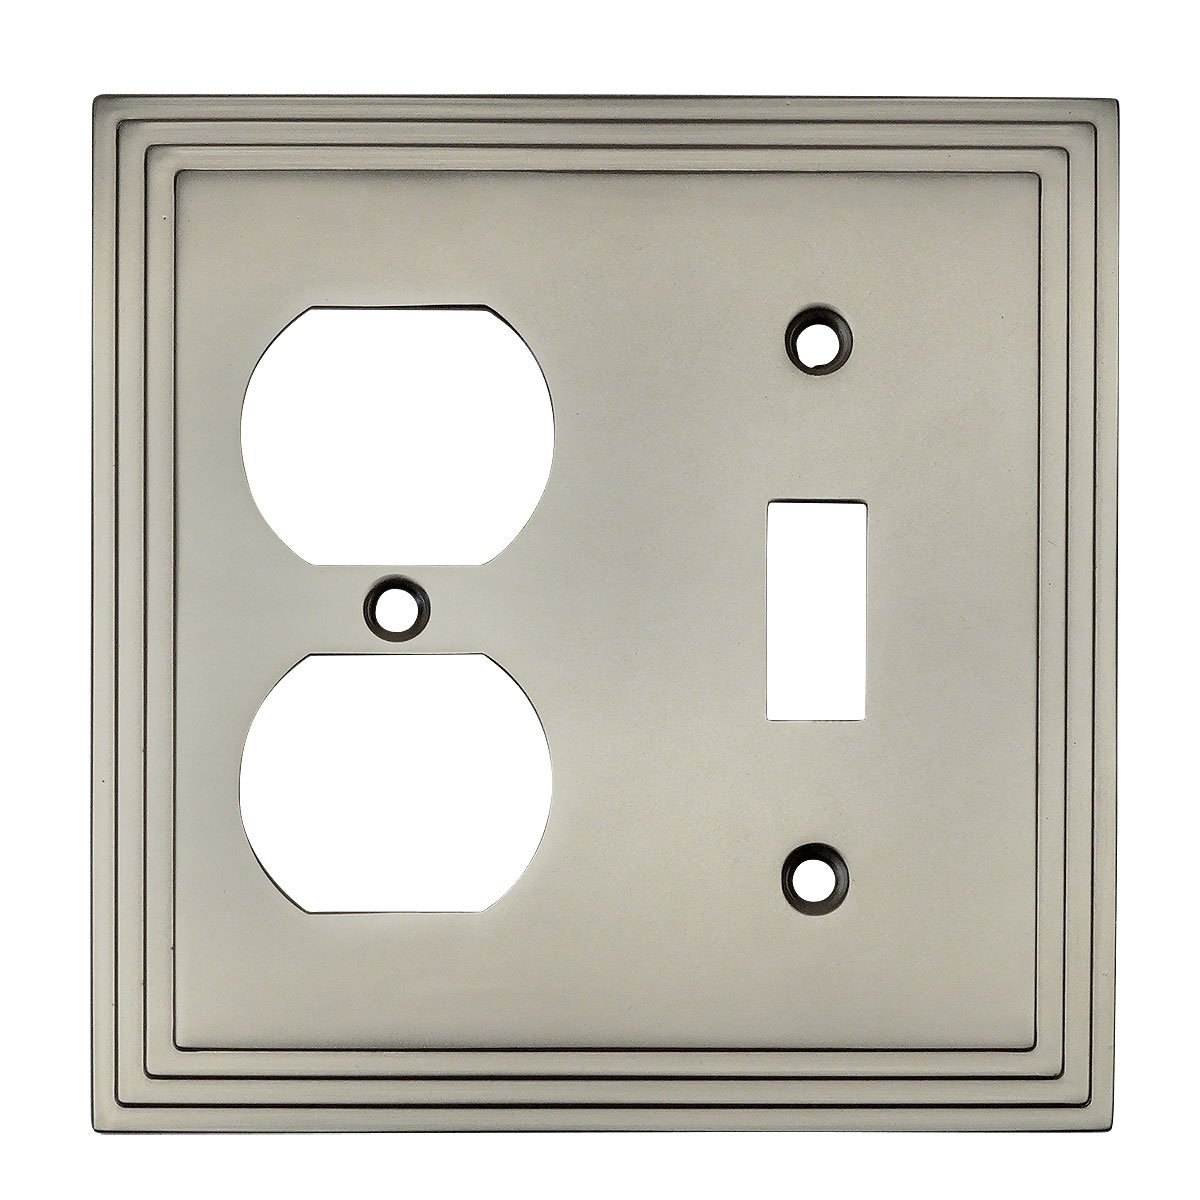 Satin Nickel Toggle Amp Duplex Combo Wall Plate Outlet